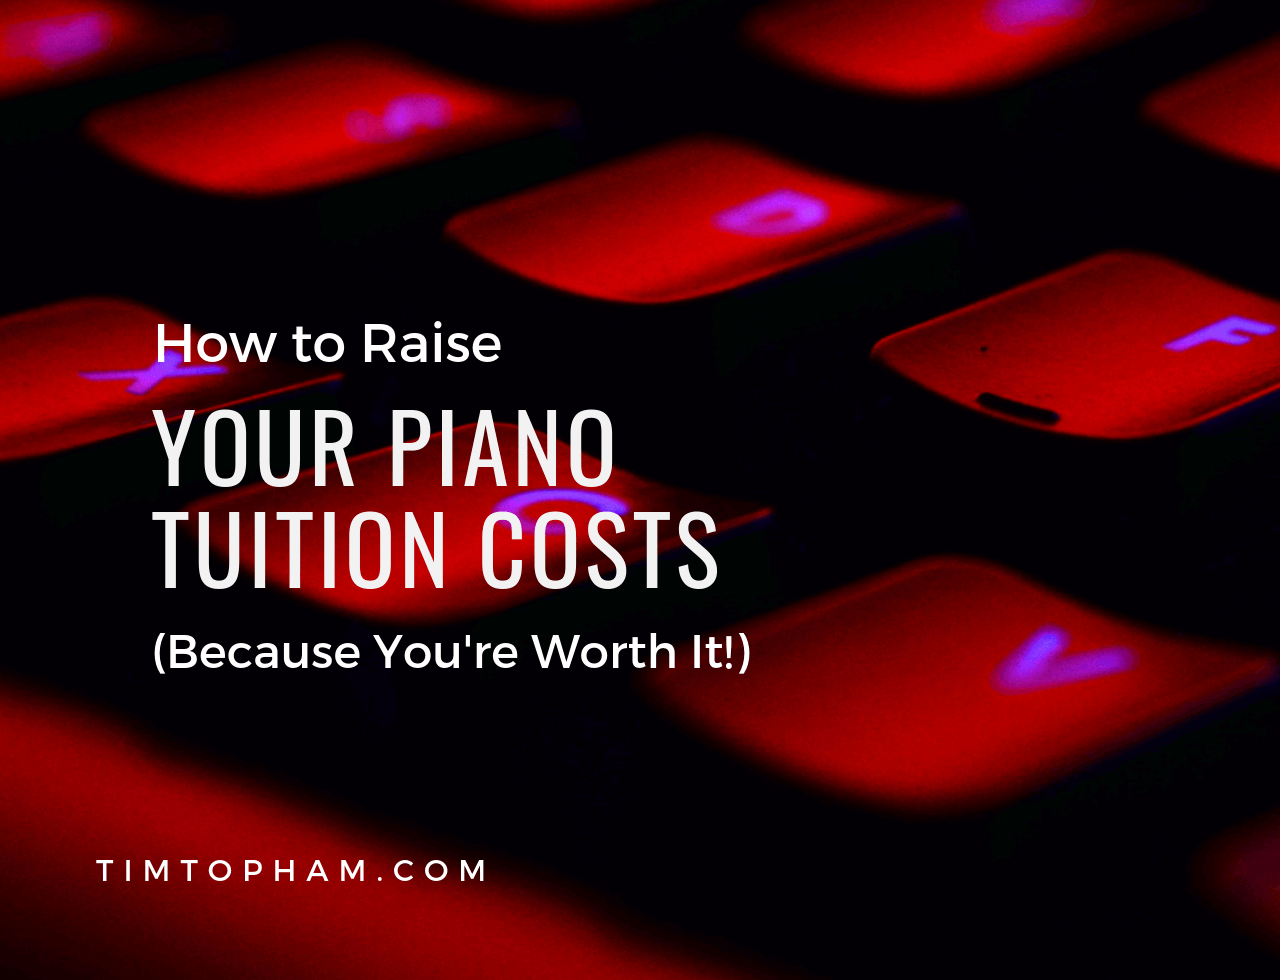 piano tuition costs